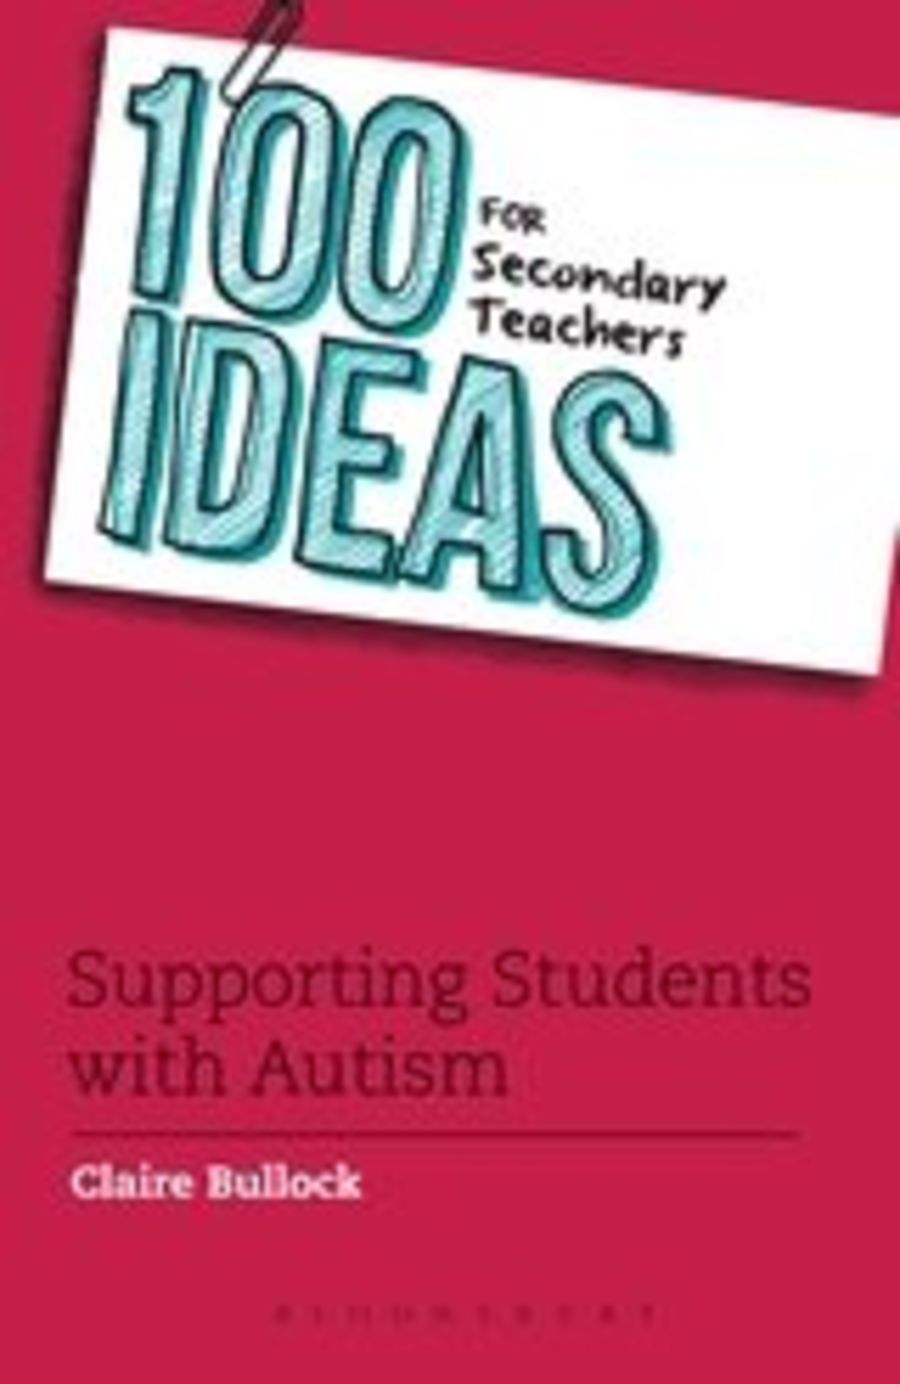 100 Ideas for Secondary Teachers Supporting Students with Autism